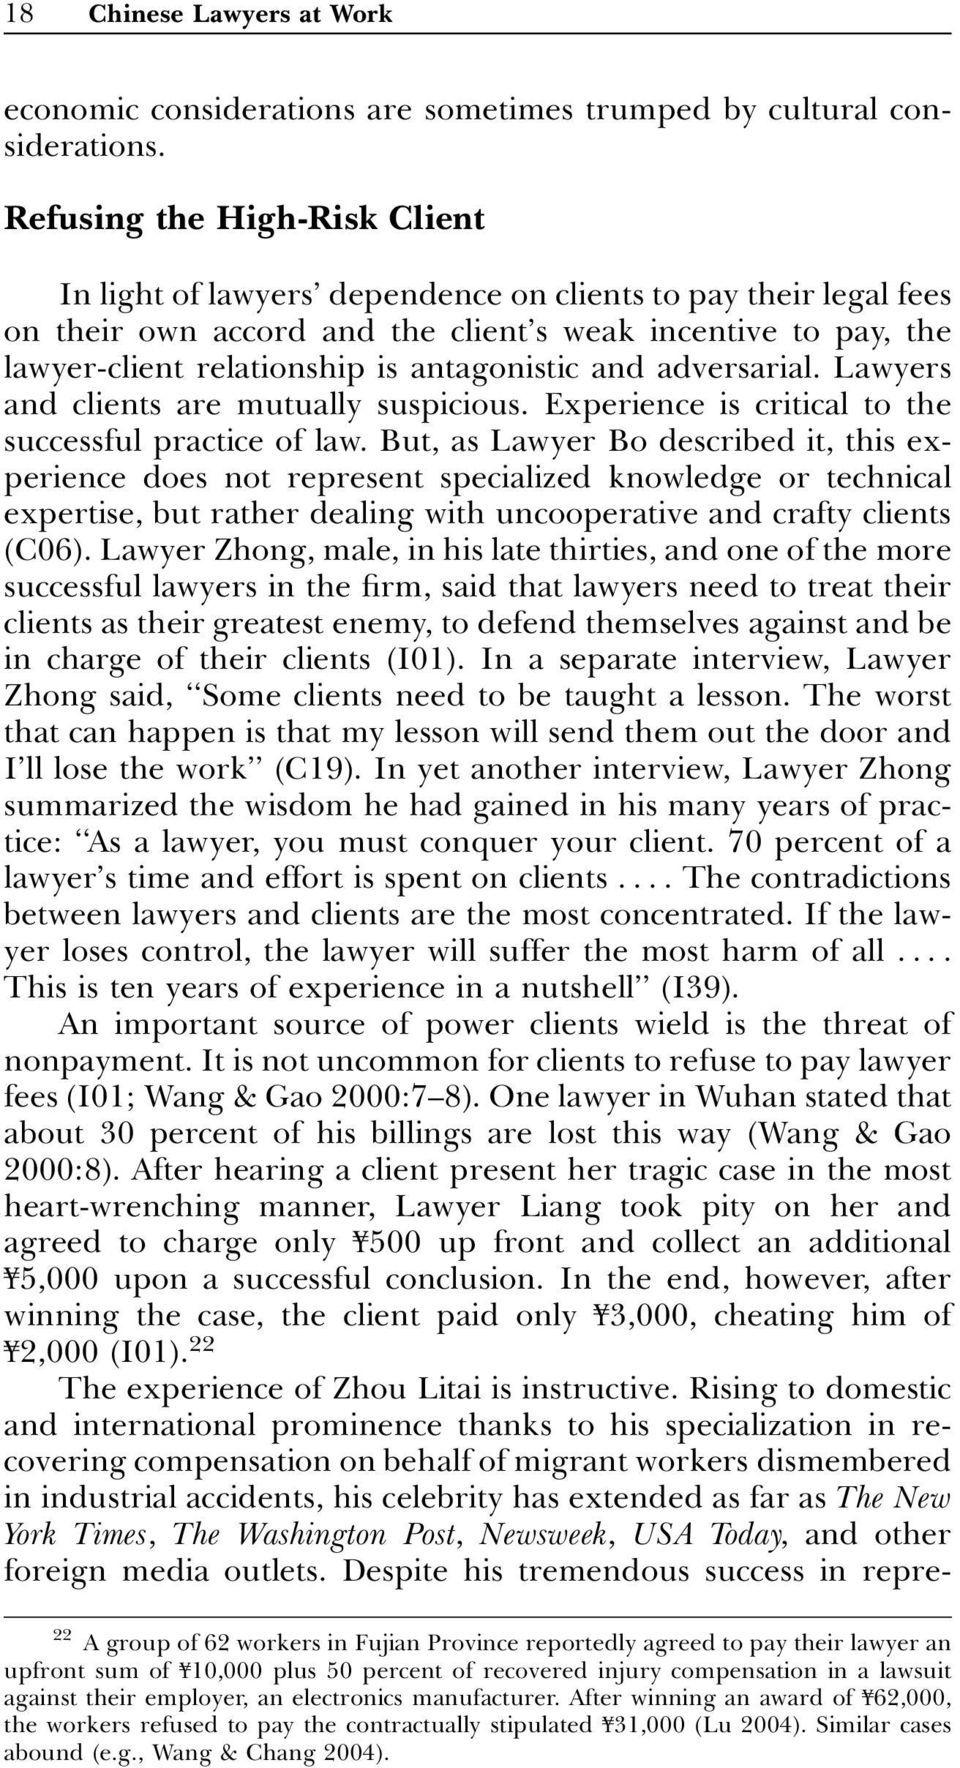 antagonistic and adversarial. Lawyers and clients are mutually suspicious. Experience is critical to the successful practice of law.